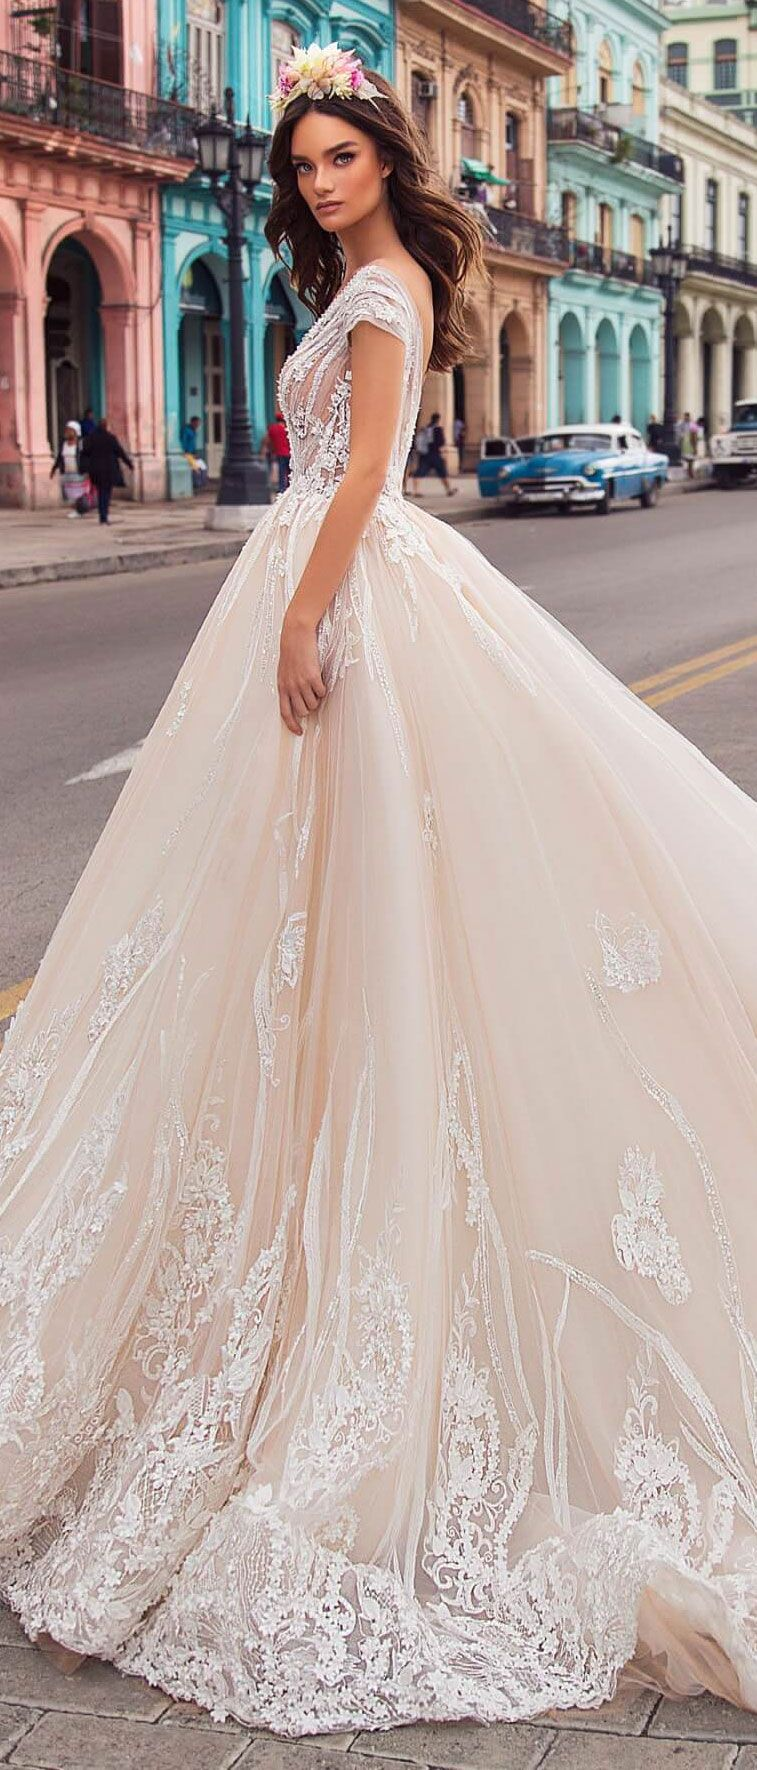 Off-the-shoulder v-neck, fitted bodice and gorgeous train that is embellished with floral lace will leave everyone speechless #wedding #weddingdress #weddinggown #bridedress